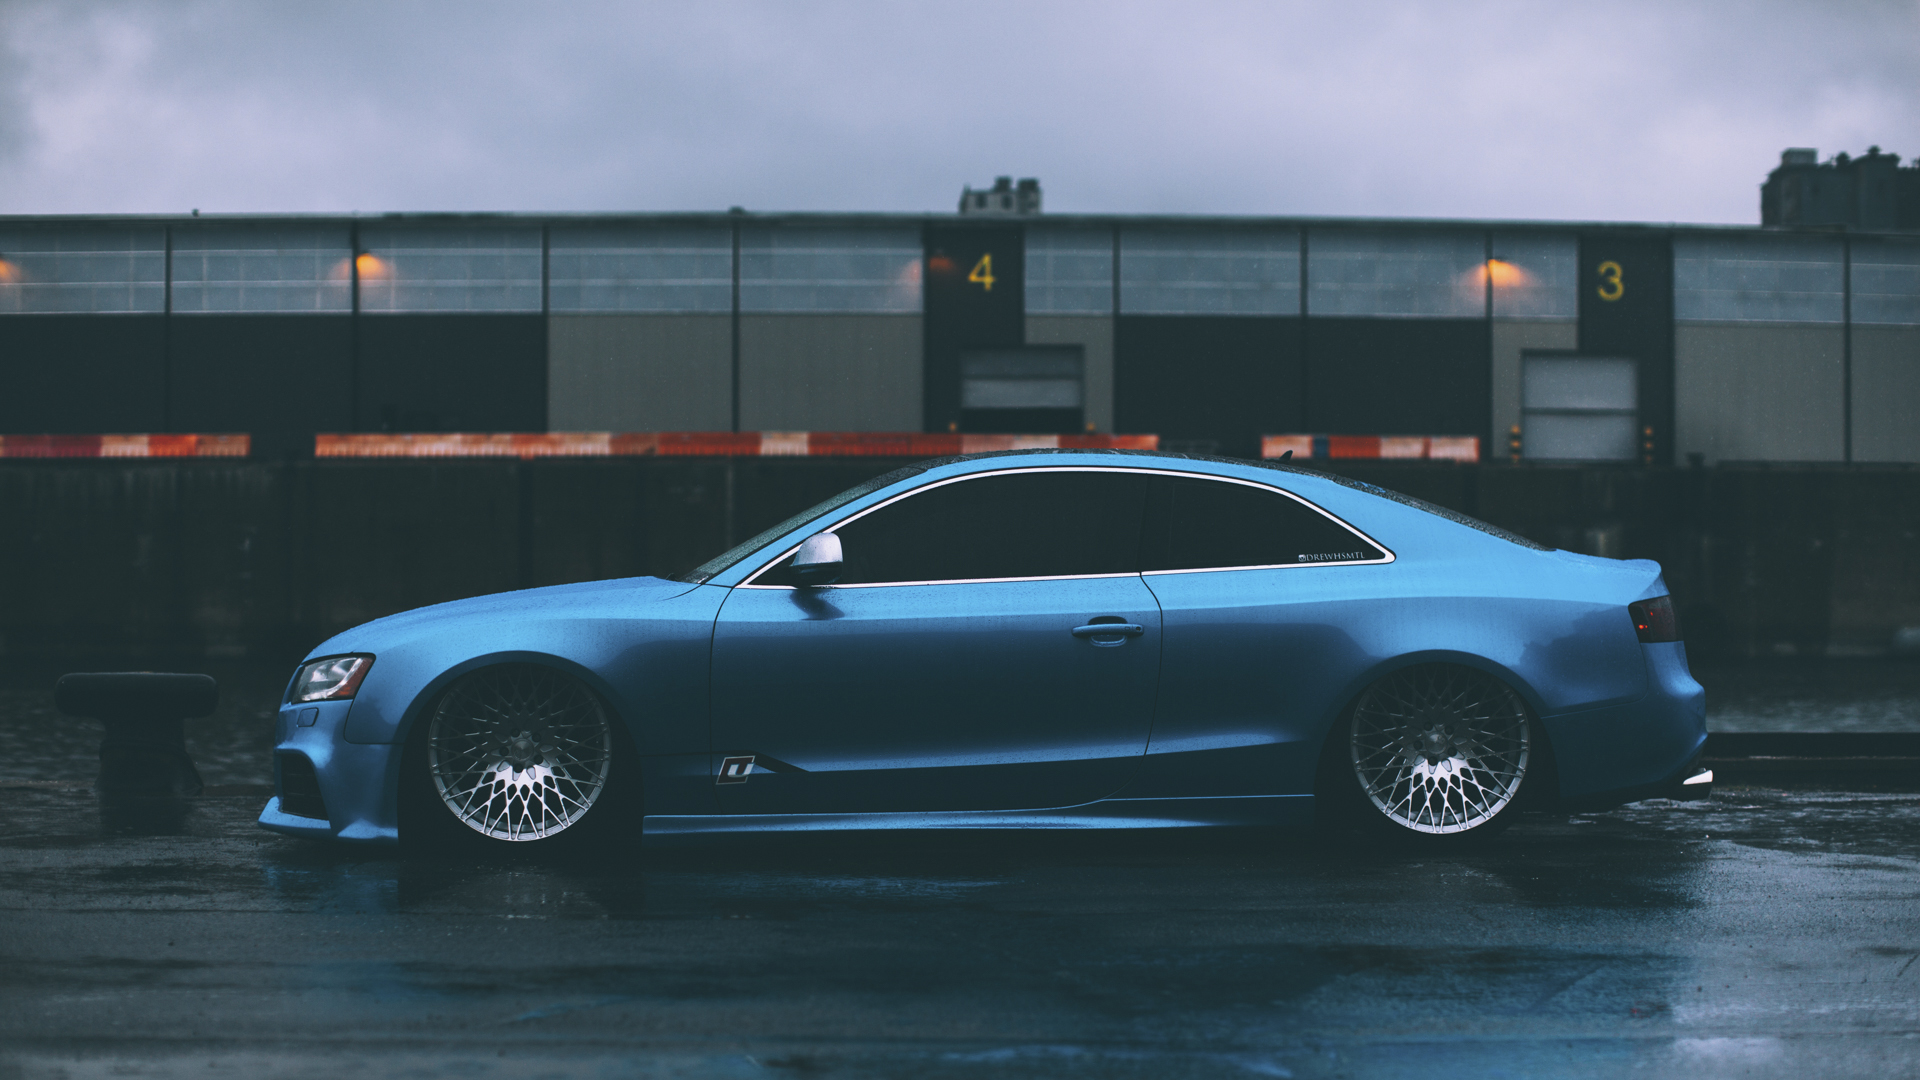 Audi Rs5 Depth Of Field Audi Coupe Audi Rs5 2170357 Hd Wallpaper Backgrounds Download